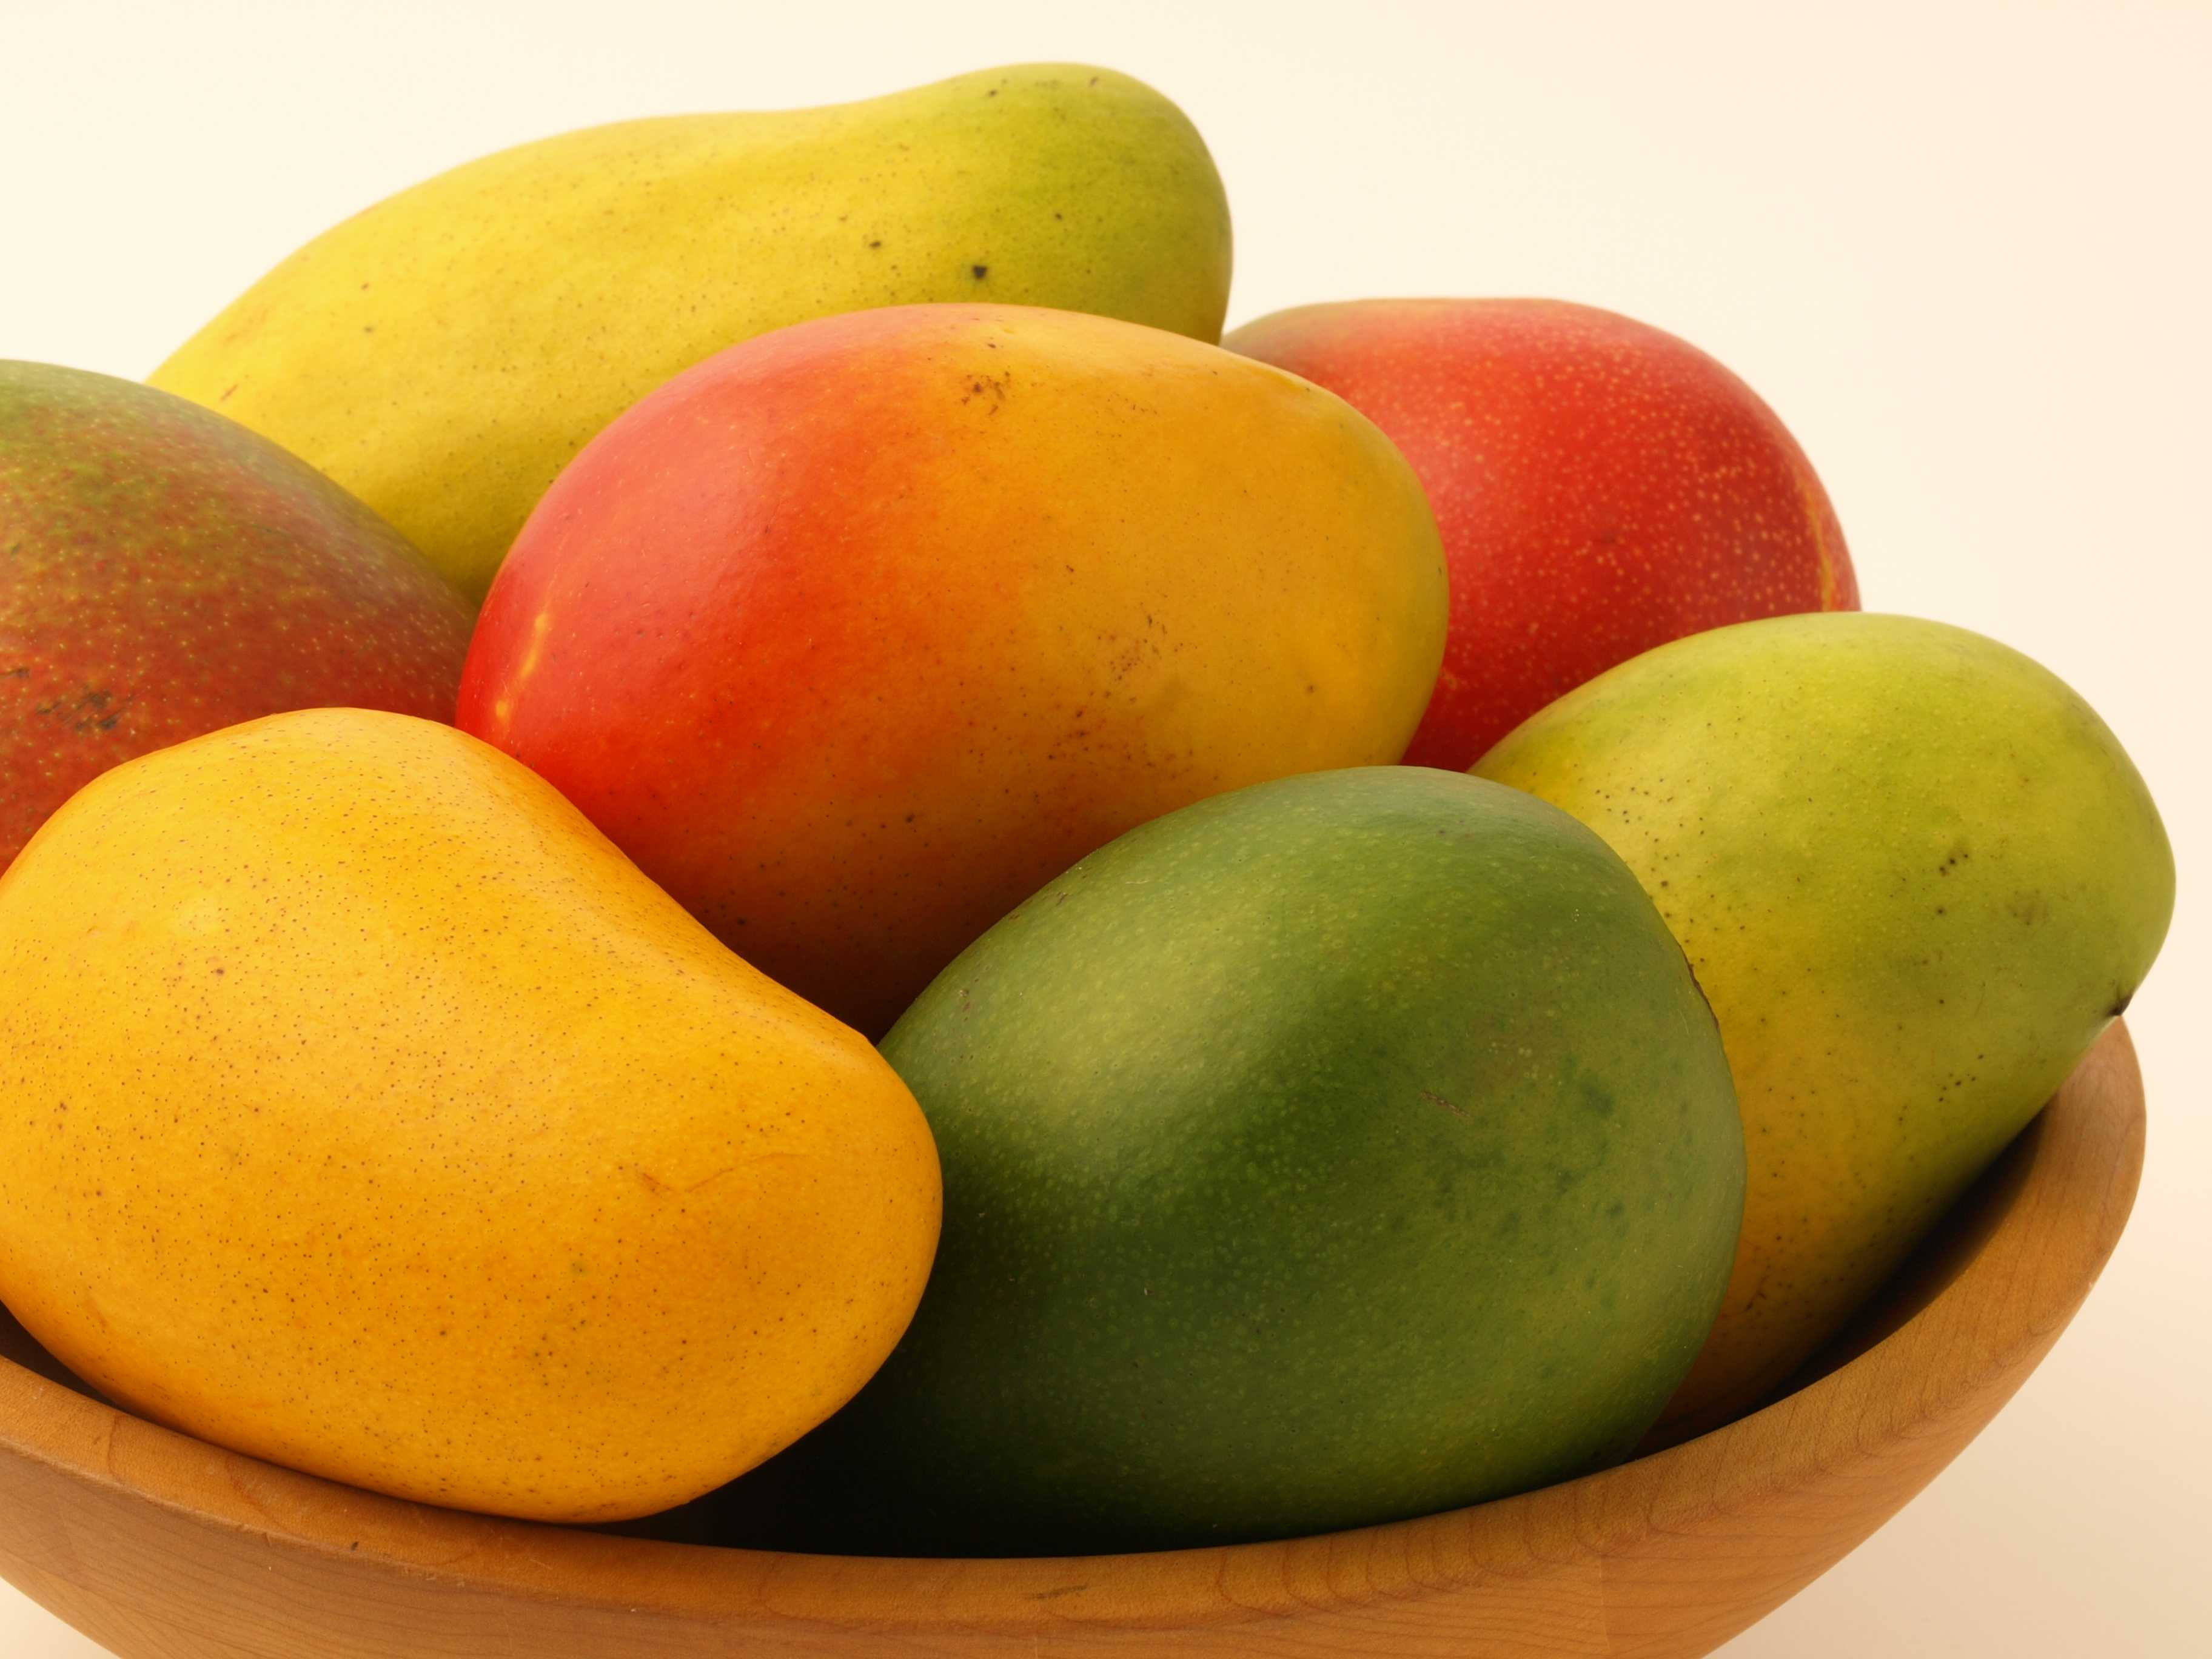 Ripe and Unripe Mango Fruits in a Bowl 106.41 Kb